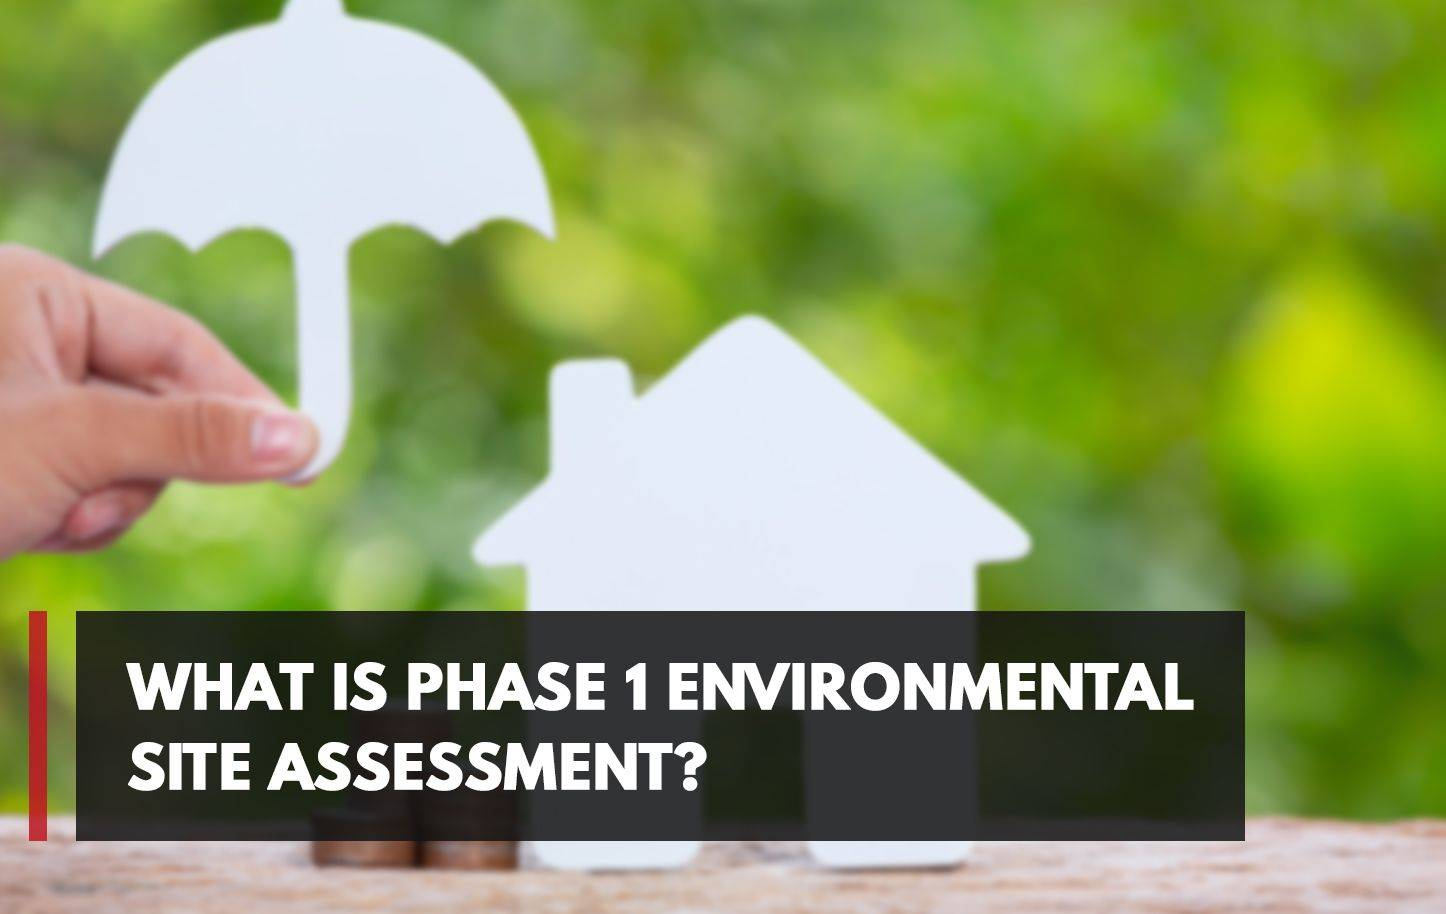 What Is Phase 1 Environmental Site Assessment?